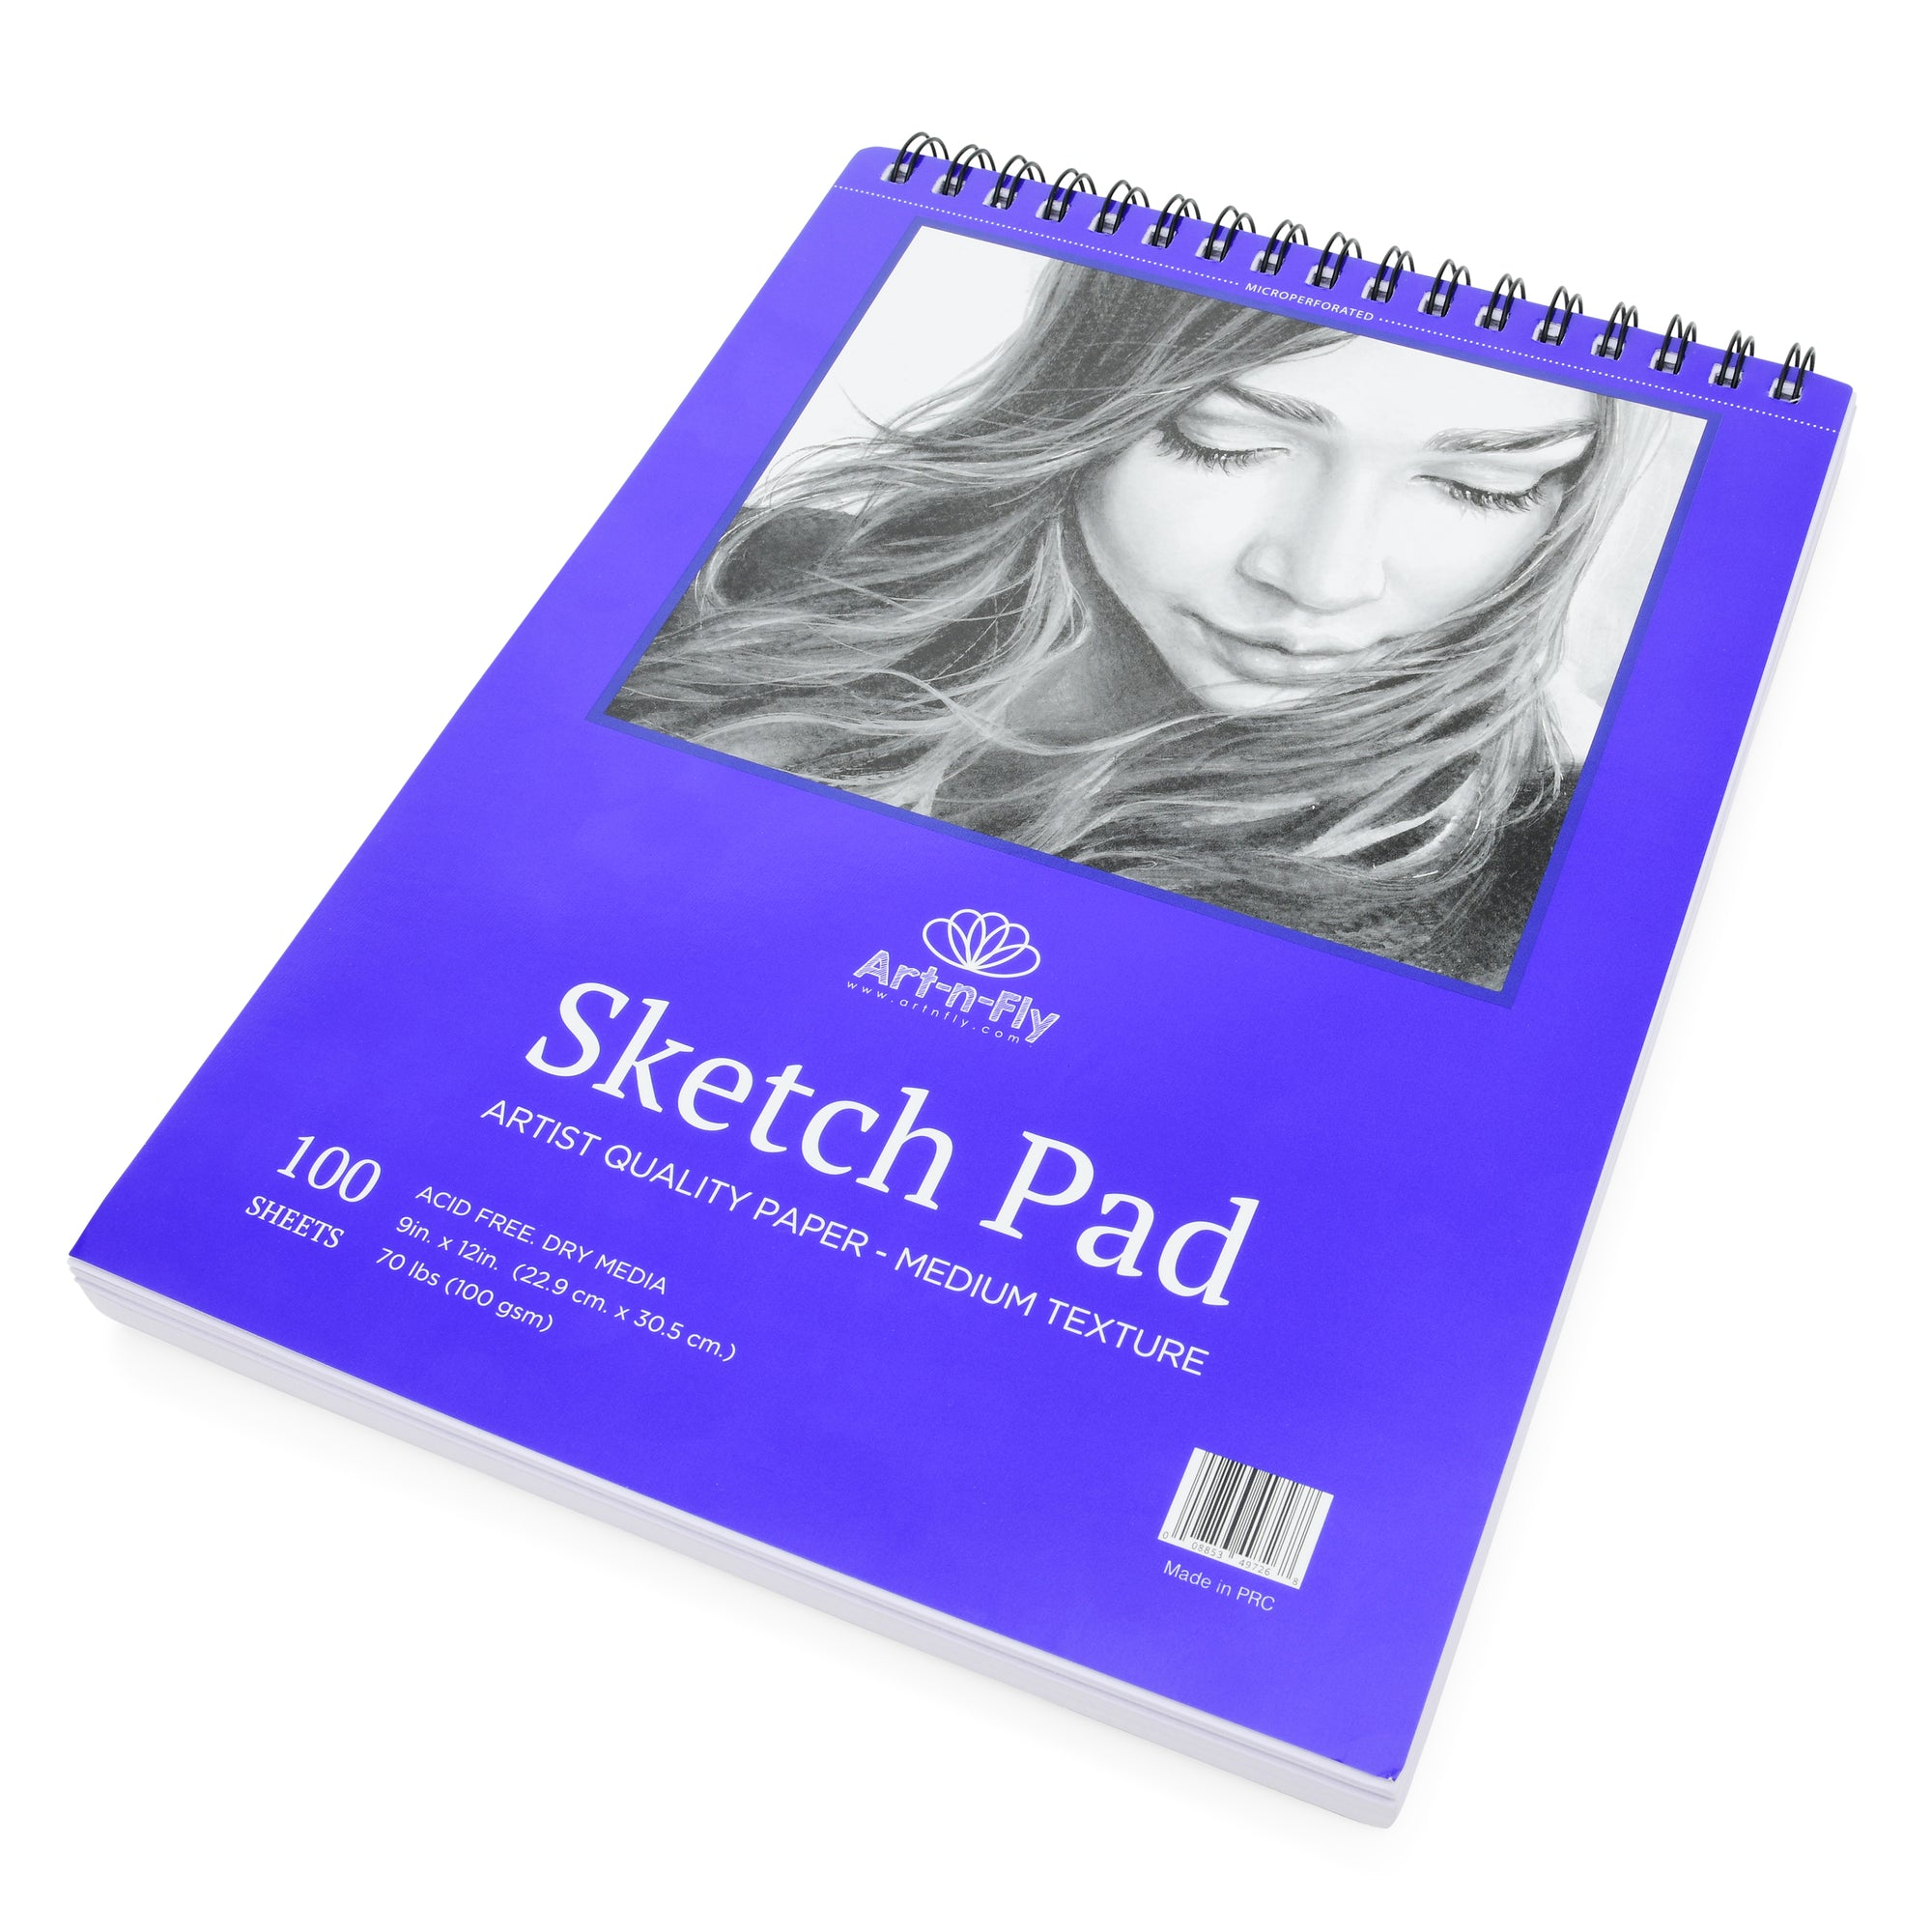 100 Sheets 9 X 12 Inch Sketch Pad Textured Surface